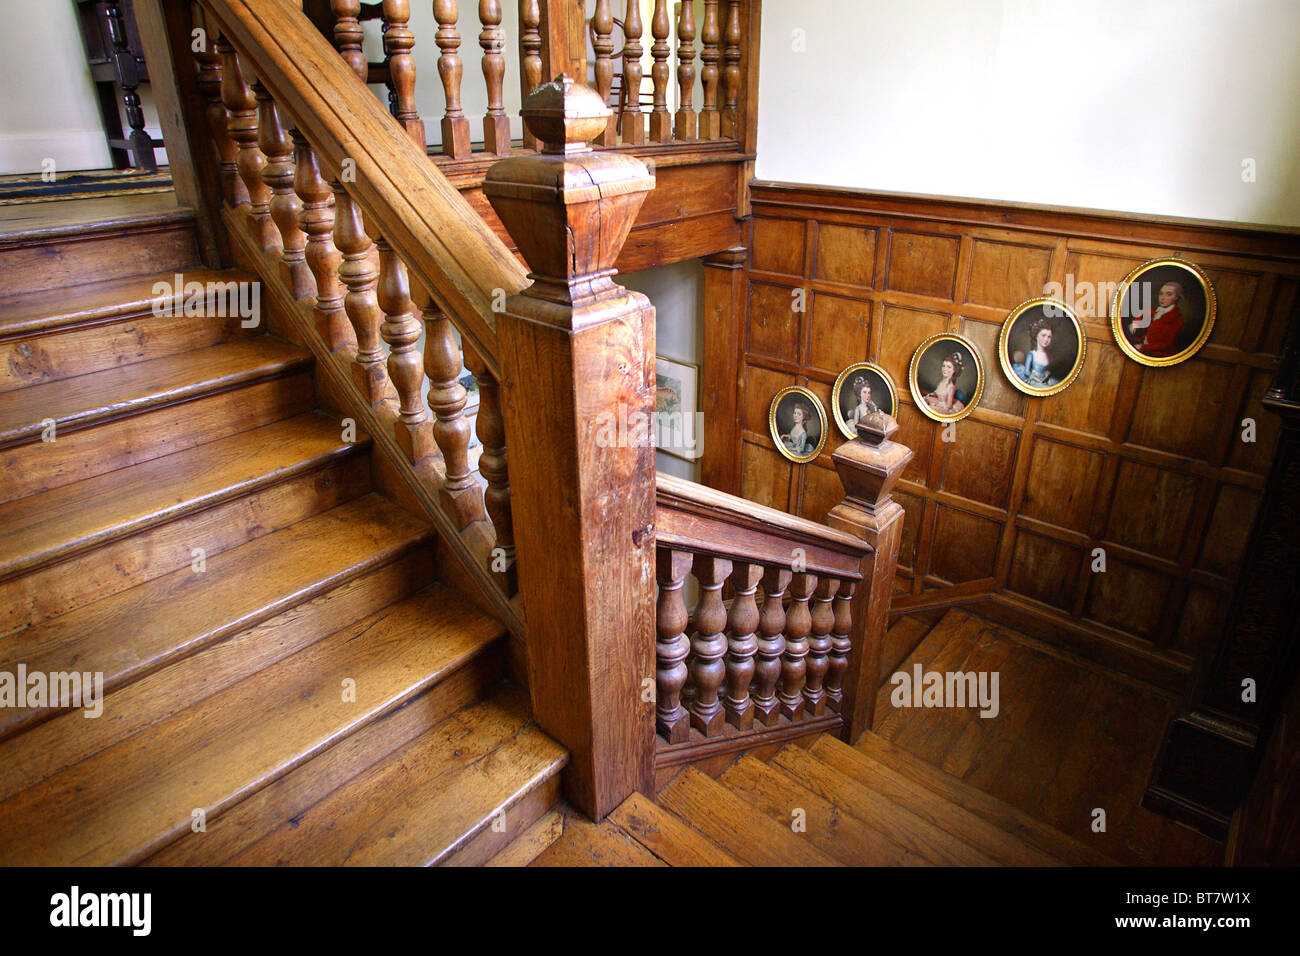 Oak Staircase In An English Manor House.   Stock Image